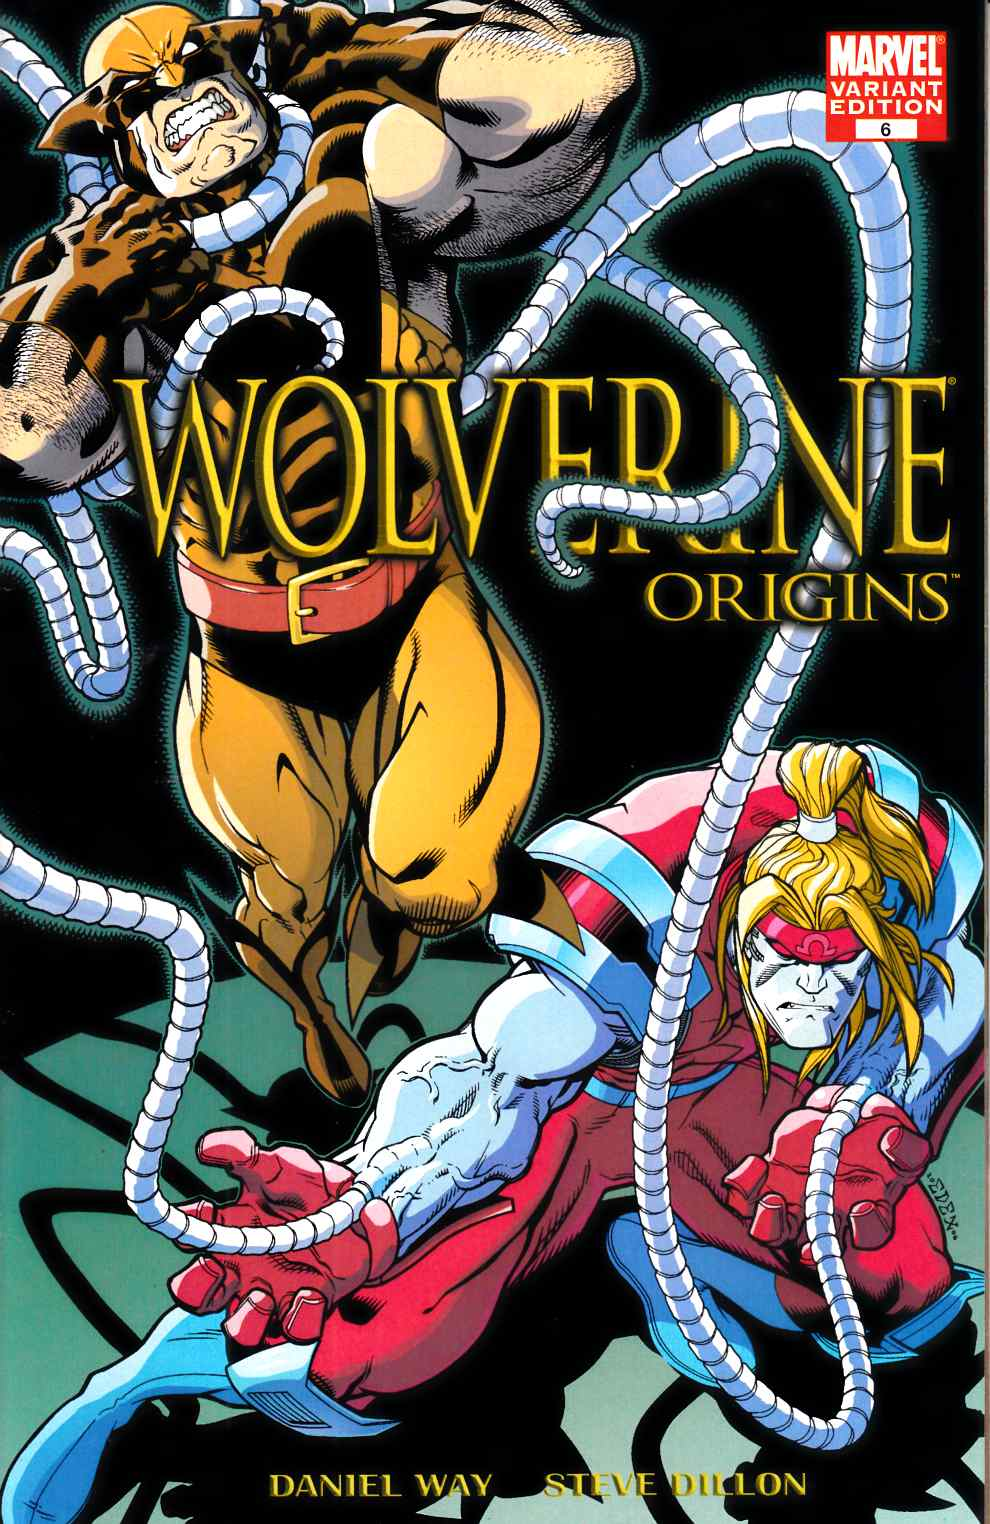 Wolverine Origins #6 Cover B Very Fine (8.0) [Marvel Comic] THUMBNAIL